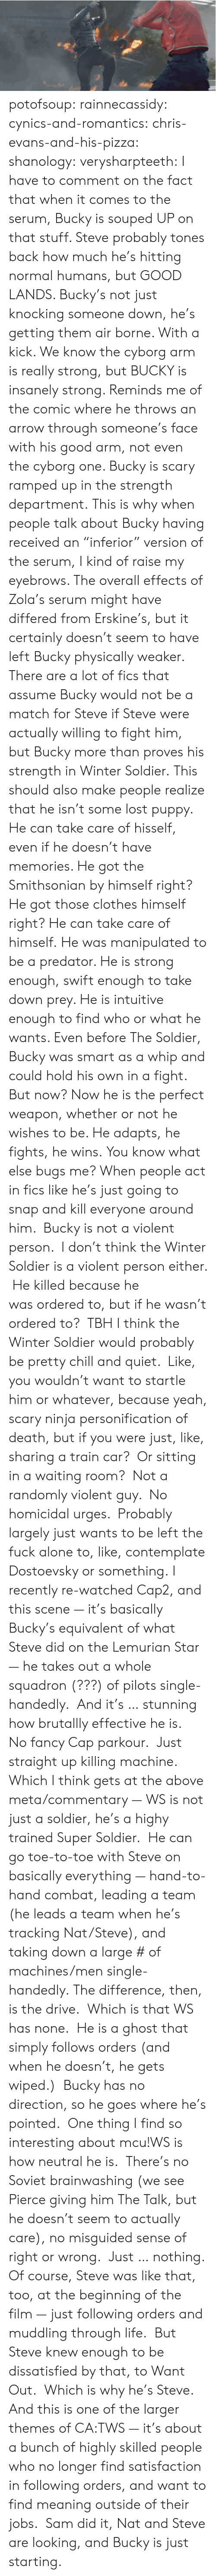 "cyborg: potofsoup: rainnecassidy:  cynics-and-romantics:  chris-evans-and-his-pizza:  shanology:  verysharpteeth:  I have to comment on the fact that when it comes to the serum, Bucky is souped UP on that stuff. Steve probably tones back how much he's hitting normal humans, but GOOD LANDS. Bucky's not just knocking someone down, he's getting them air borne. With a kick. We know the cyborg arm is really strong, but BUCKY is insanely strong. Reminds me of the comic where he throws an arrow through someone's face with his good arm, not even the cyborg one. Bucky is scary ramped up in the strength department.  This is why when people talk about Bucky having received an ""inferior"" version of the serum, I kind of raise my eyebrows. The overall effects of Zola's serum might have differed from Erskine's, but it certainly doesn't seem to have left Bucky physically weaker. There are a lot of fics that assume Bucky would not be a match for Steve if Steve were actually willing to fight him, but Bucky more than proves his strength in Winter Soldier.  This should also make people realize that he isn't some lost puppy. He can take care of hisself, even if he doesn't have memories. He got the Smithsonian by himself right? He got those clothes himself right? He can take care of himself.  He was manipulated to be a predator. He is strong enough, swift enough to take down prey. He is intuitive enough to find who or what he wants. Even before The Soldier, Bucky was smart as a whip and could hold his own in a fight. But now? Now he is the perfect weapon, whether or not he wishes to be. He adapts, he fights, he wins.  You know what else bugs me? When people act in fics like he's just going to snap and kill everyone around him.  Bucky is not a violent person.  I don't think the Winter Soldier is a violent person either.  He killed because he was ordered to, but if he wasn't ordered to?  TBH I think the Winter Soldier would probably be pretty chill and quiet.  Like, you wouldn't want to startle him or whatever, because yeah, scary ninja personification of death, but if you were just, like, sharing a train car?  Or sitting in a waiting room?  Not a randomly violent guy.  No homicidal urges.  Probably largely just wants to be left the fuck alone to, like, contemplate Dostoevsky or something.  I recently re-watched Cap2, and this scene — it's basically Bucky's equivalent of what Steve did on the Lemurian Star — he takes out a whole squadron (???) of pilots single-handedly.  And it's … stunning how brutallly effective he is.  No fancy Cap parkour.  Just straight up killing machine. Which I think gets at the above meta/commentary — WS is not just a soldier, he's a highy trained Super Soldier.  He can go toe-to-toe with Steve on basically everything — hand-to-hand combat, leading a team (he leads a team when he's tracking Nat/Steve), and taking down a large # of machines/men single-handedly. The difference, then, is the drive.  Which is that WS has none.  He is a ghost that simply follows orders (and when he doesn't, he gets wiped.)  Bucky has no direction, so he goes where he's pointed.  One thing I find so interesting about mcu!WS is how neutral he is.  There's no Soviet brainwashing (we see Pierce giving him The Talk, but he doesn't seem to actually care), no misguided sense of right or wrong.  Just … nothing. Of course, Steve was like that, too, at the beginning of the film — just following orders and muddling through life.  But Steve knew enough to be dissatisfied by that, to Want Out.  Which is why he's Steve. And this is one of the larger themes of CA:TWS — it's about a bunch of highly skilled people who no longer find satisfaction in following orders, and want to find meaning outside of their jobs.  Sam did it, Nat and Steve are looking, and Bucky is just starting."